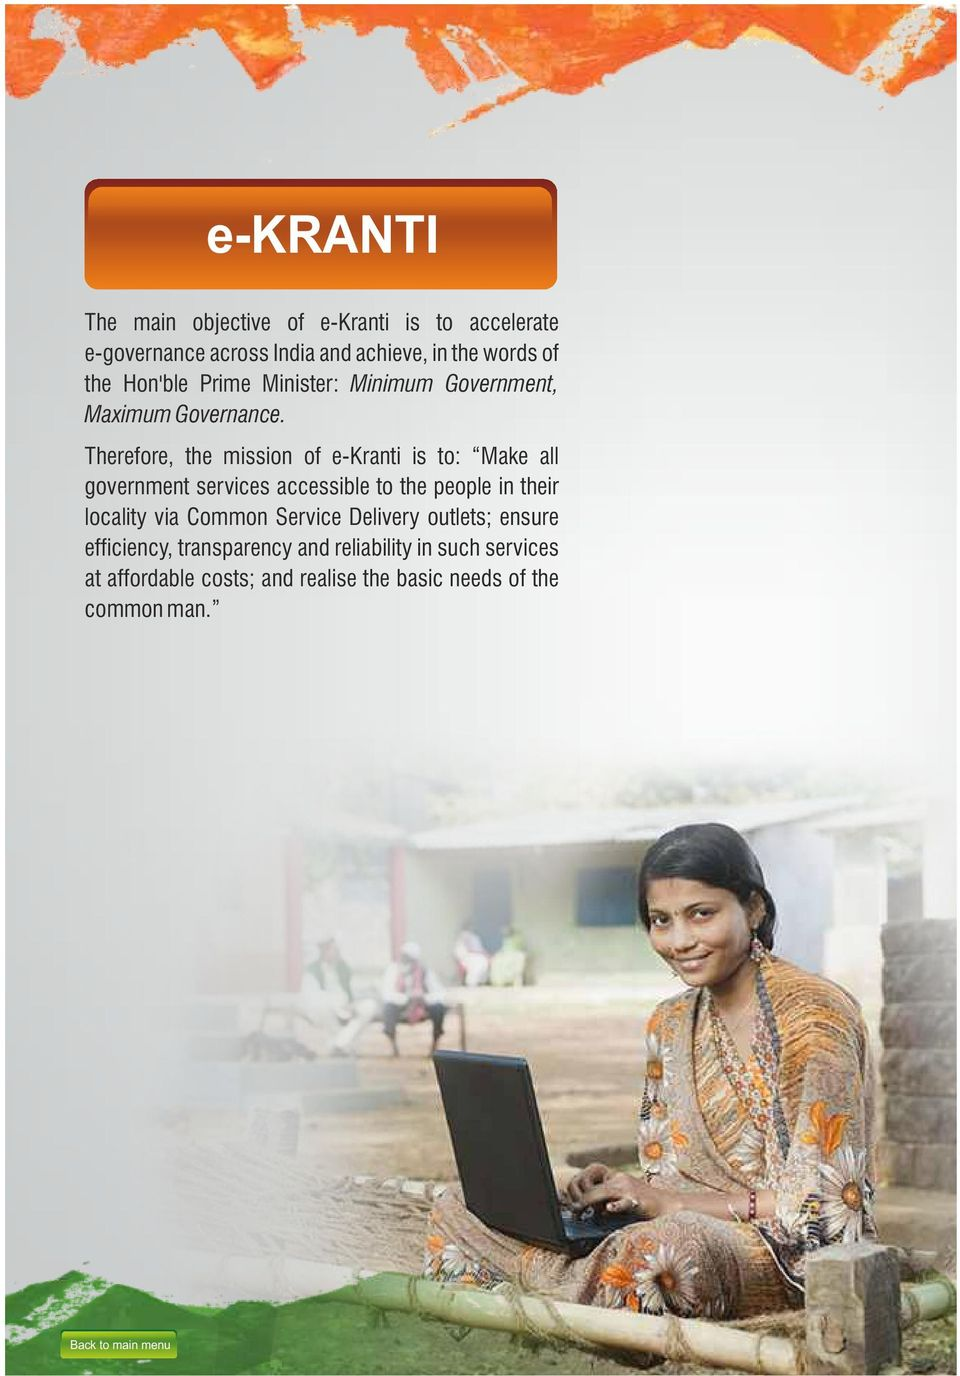 Therefore, the mission of e-kranti is to: Make all government services accessible to the people in their locality